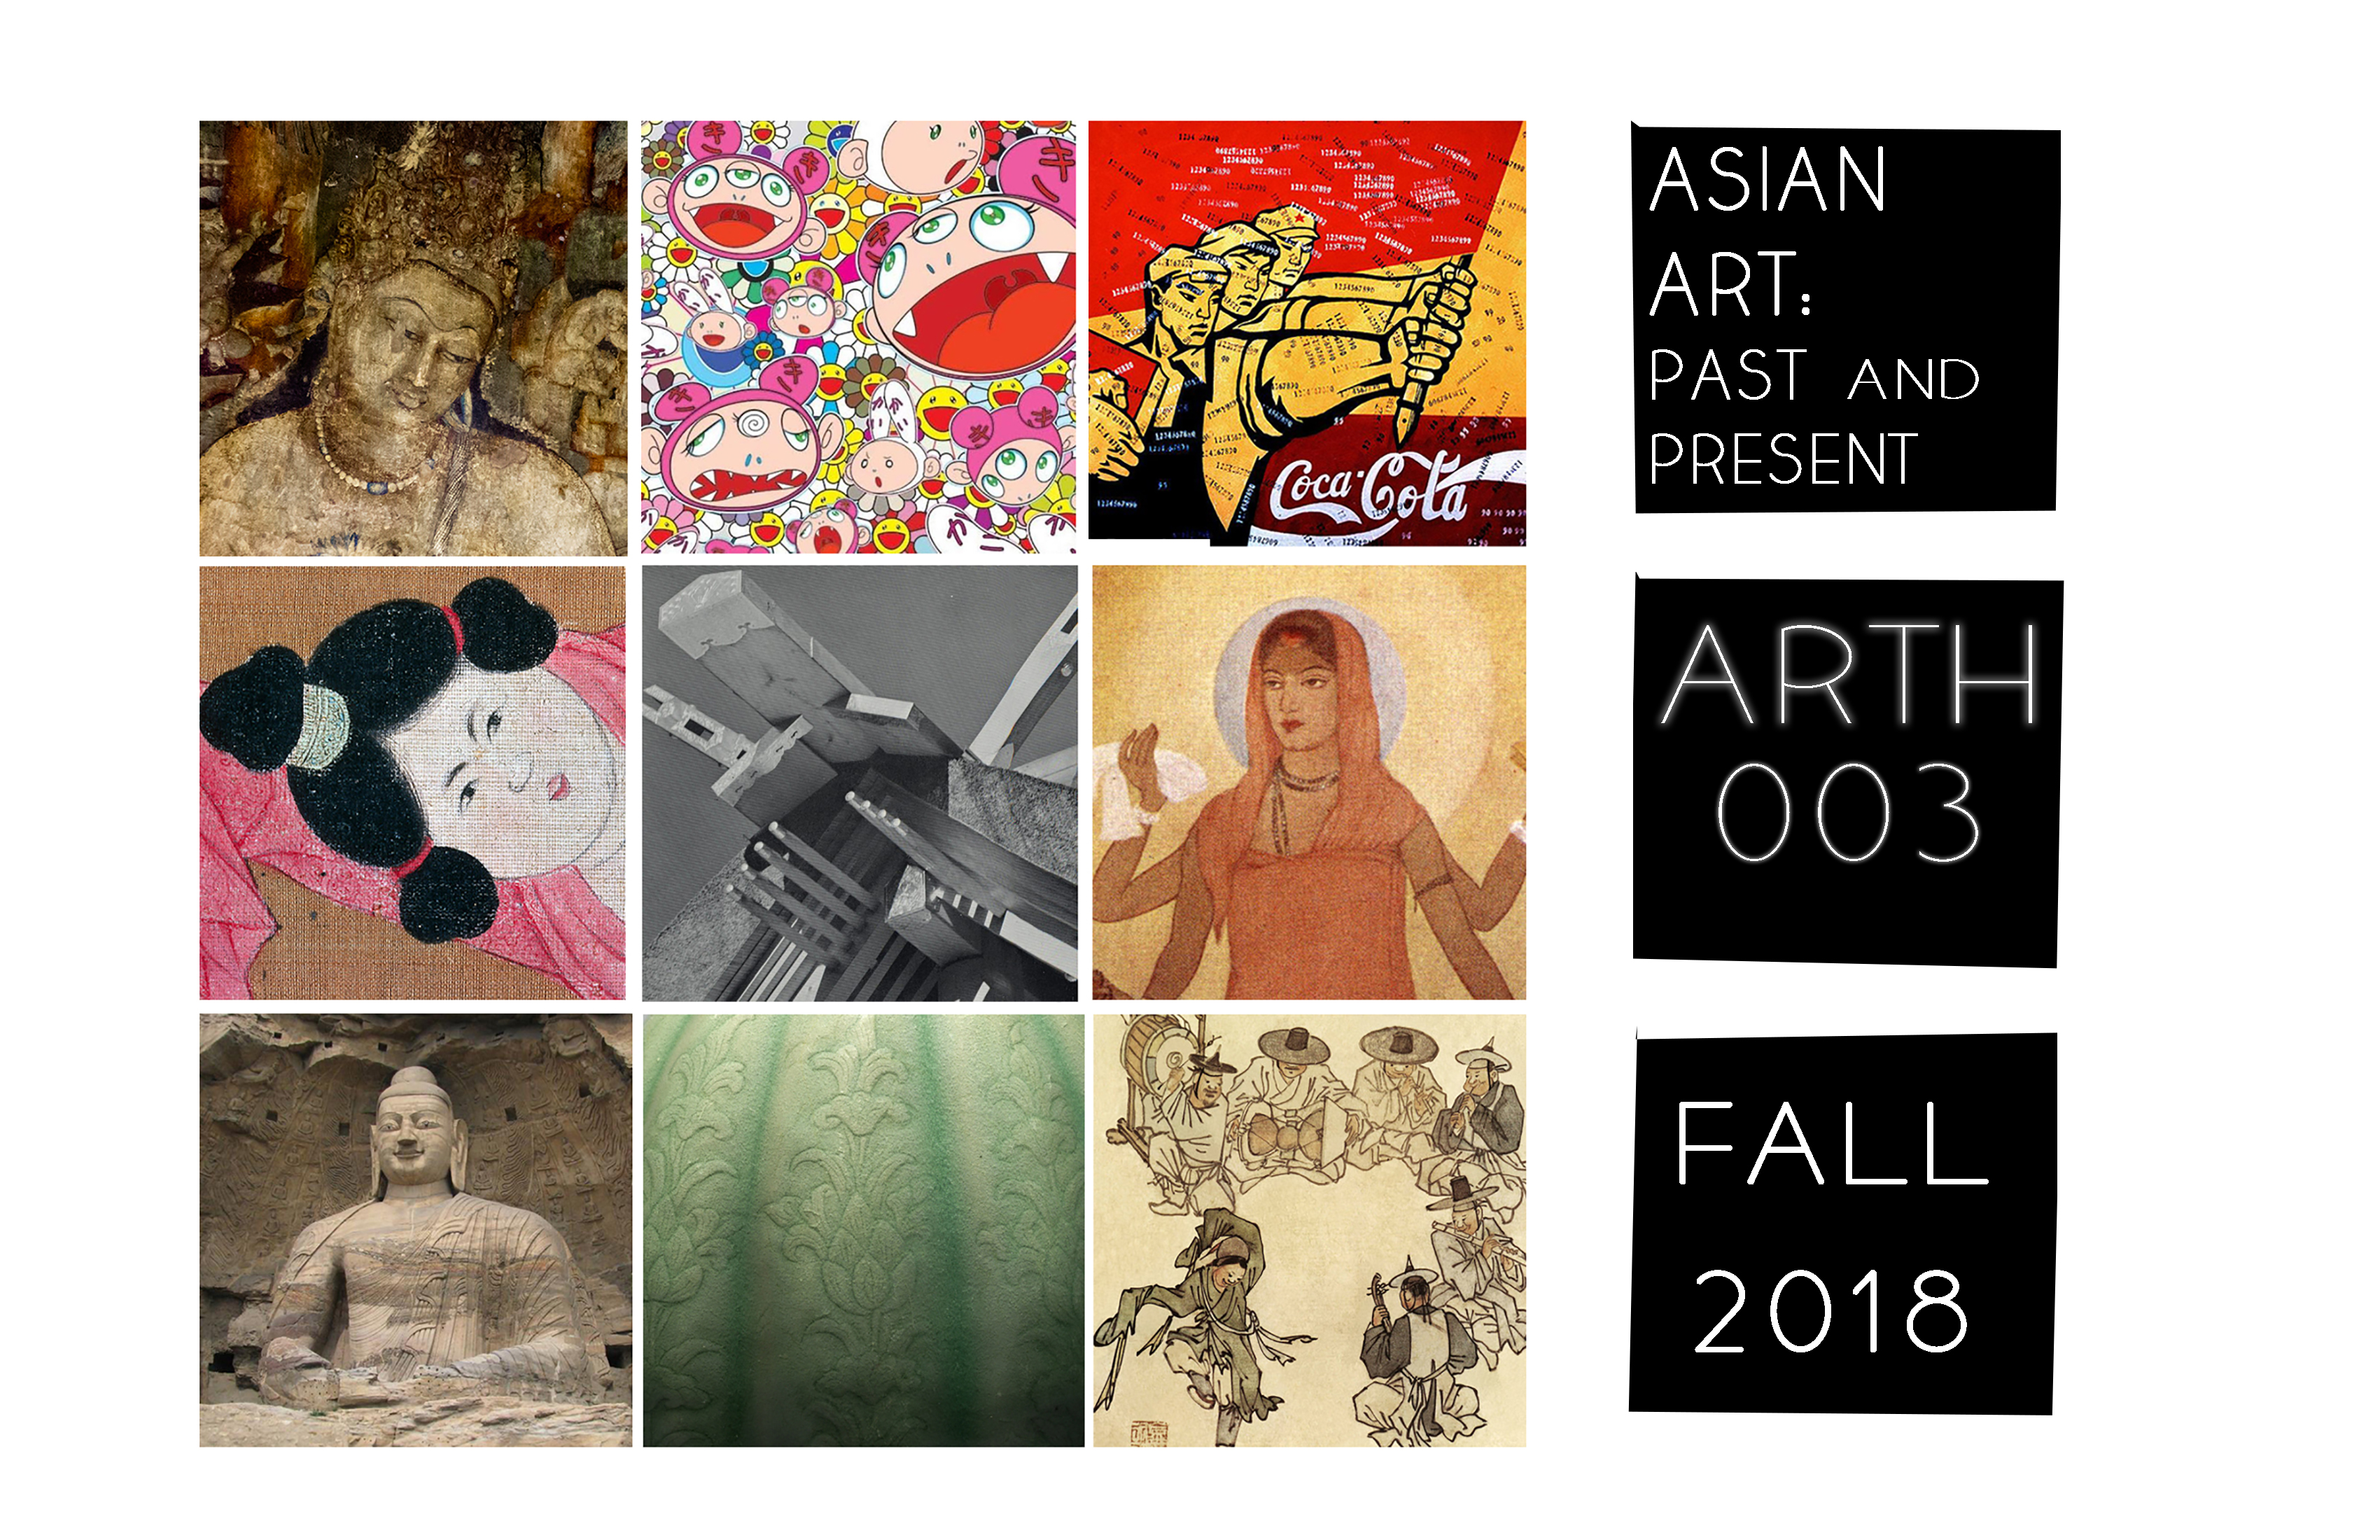 Asian Art: Past and Present class